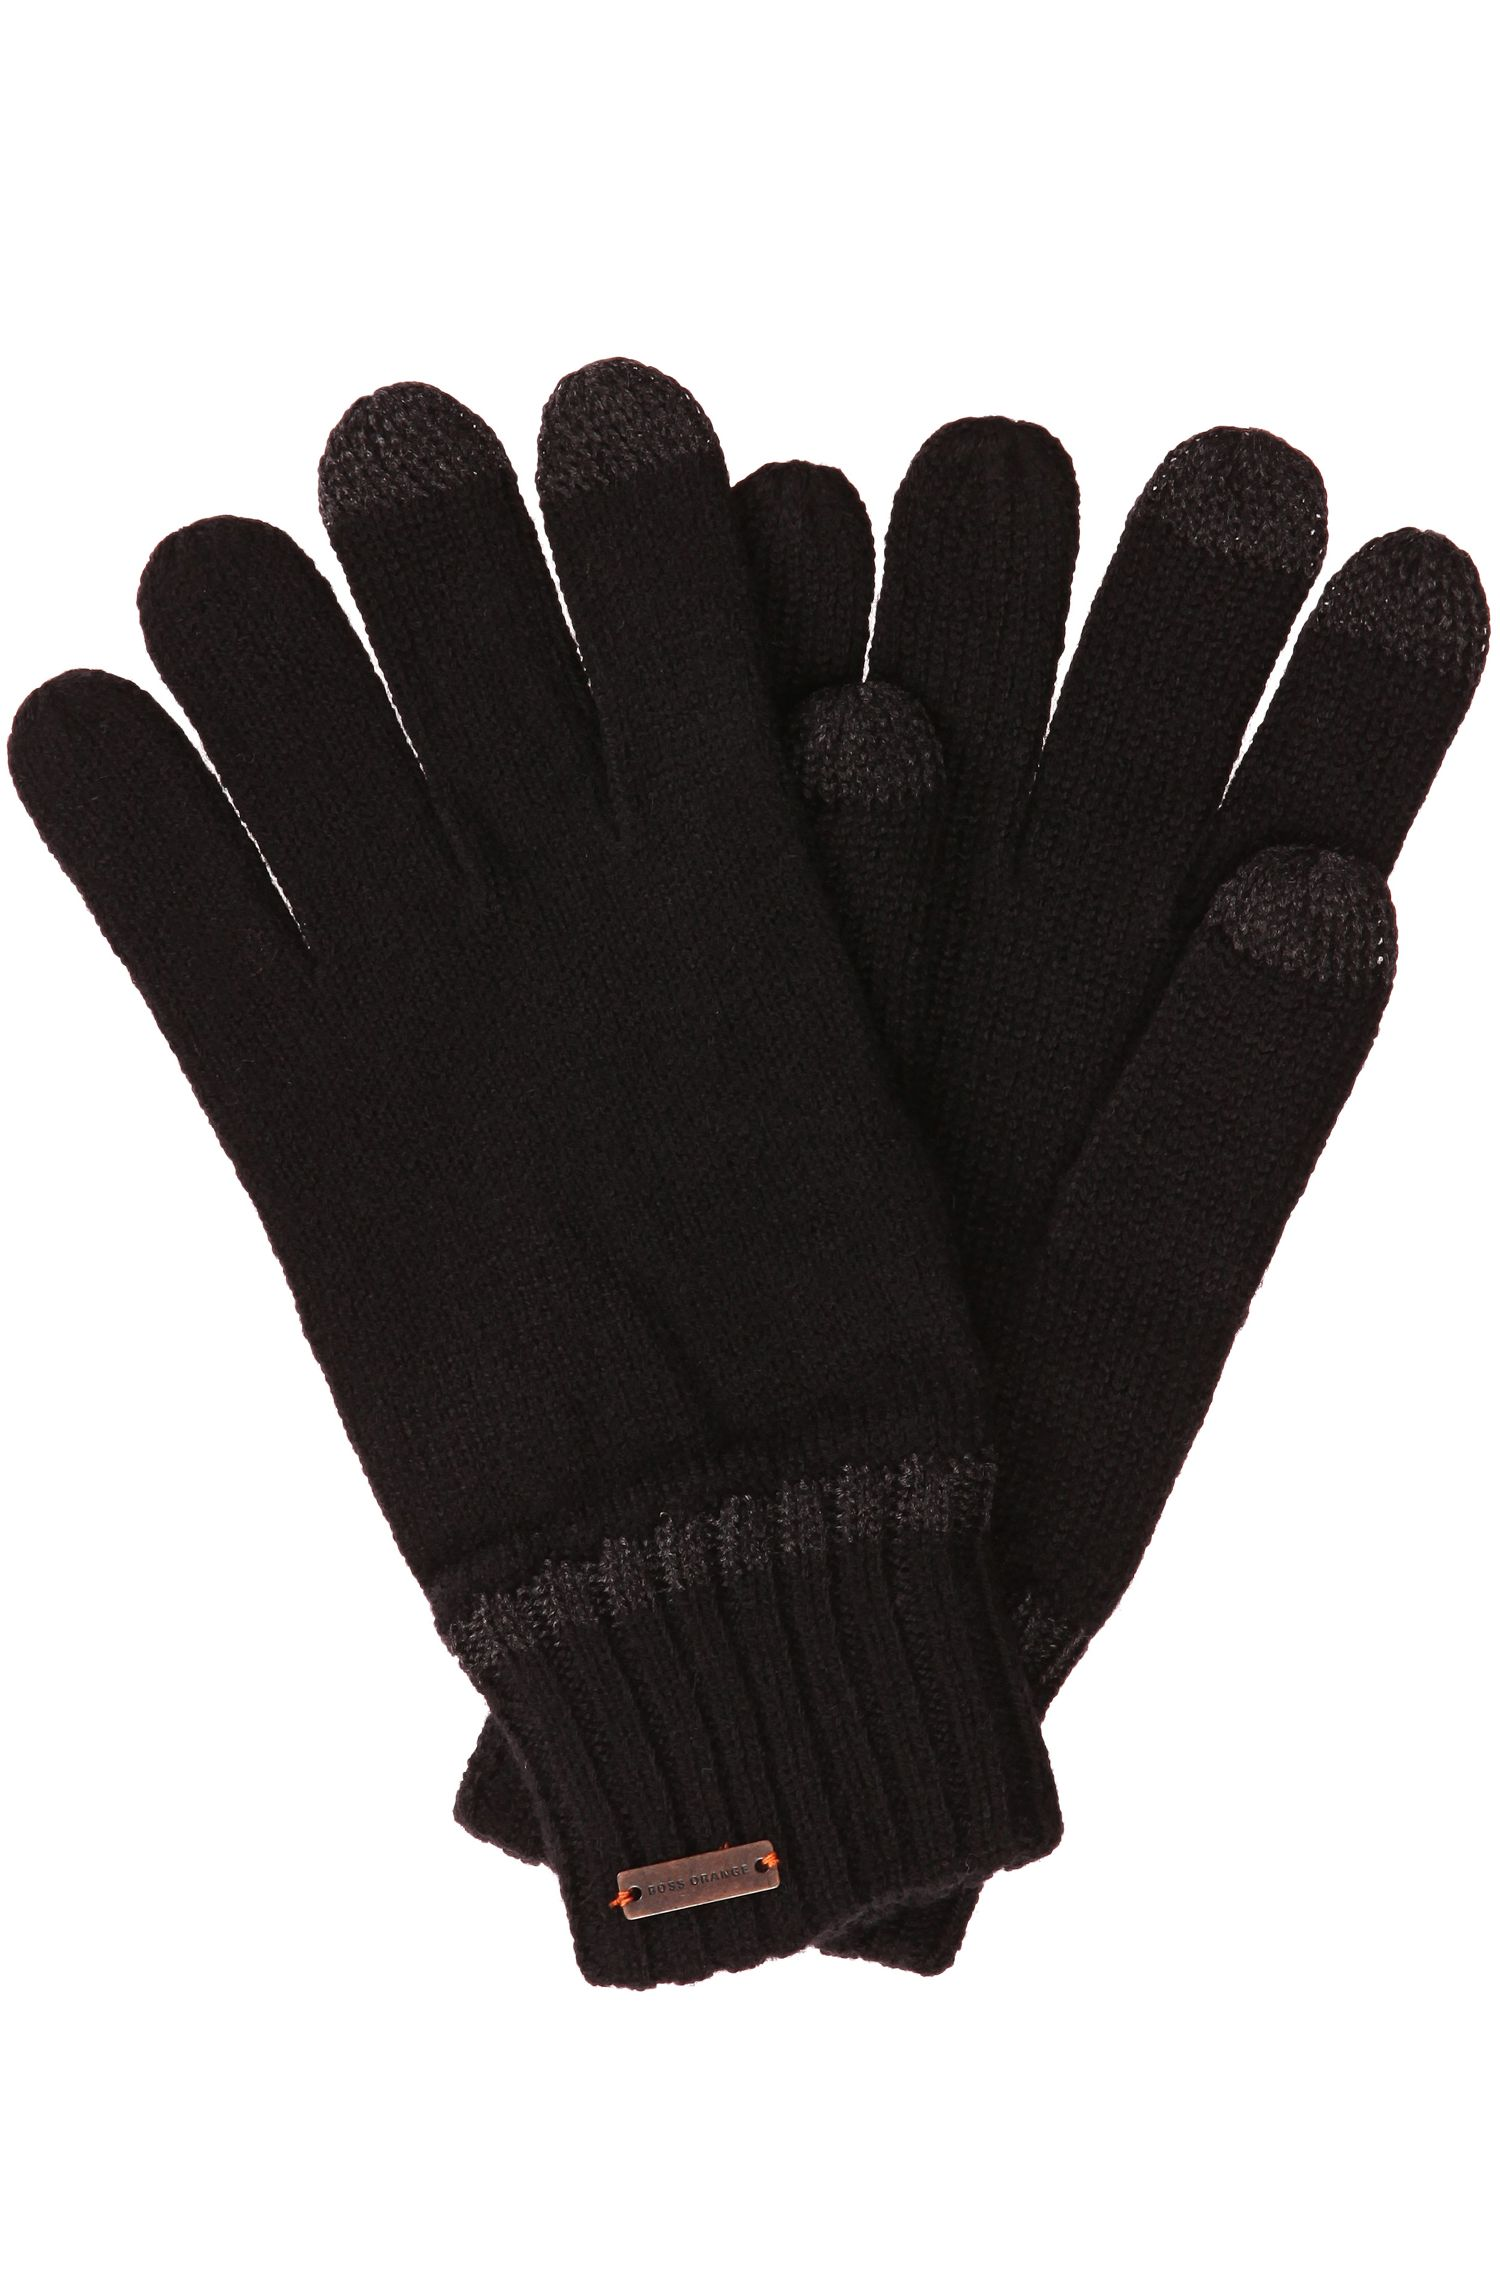 'Graas' | Wool-Blend Touch Screen Gloves